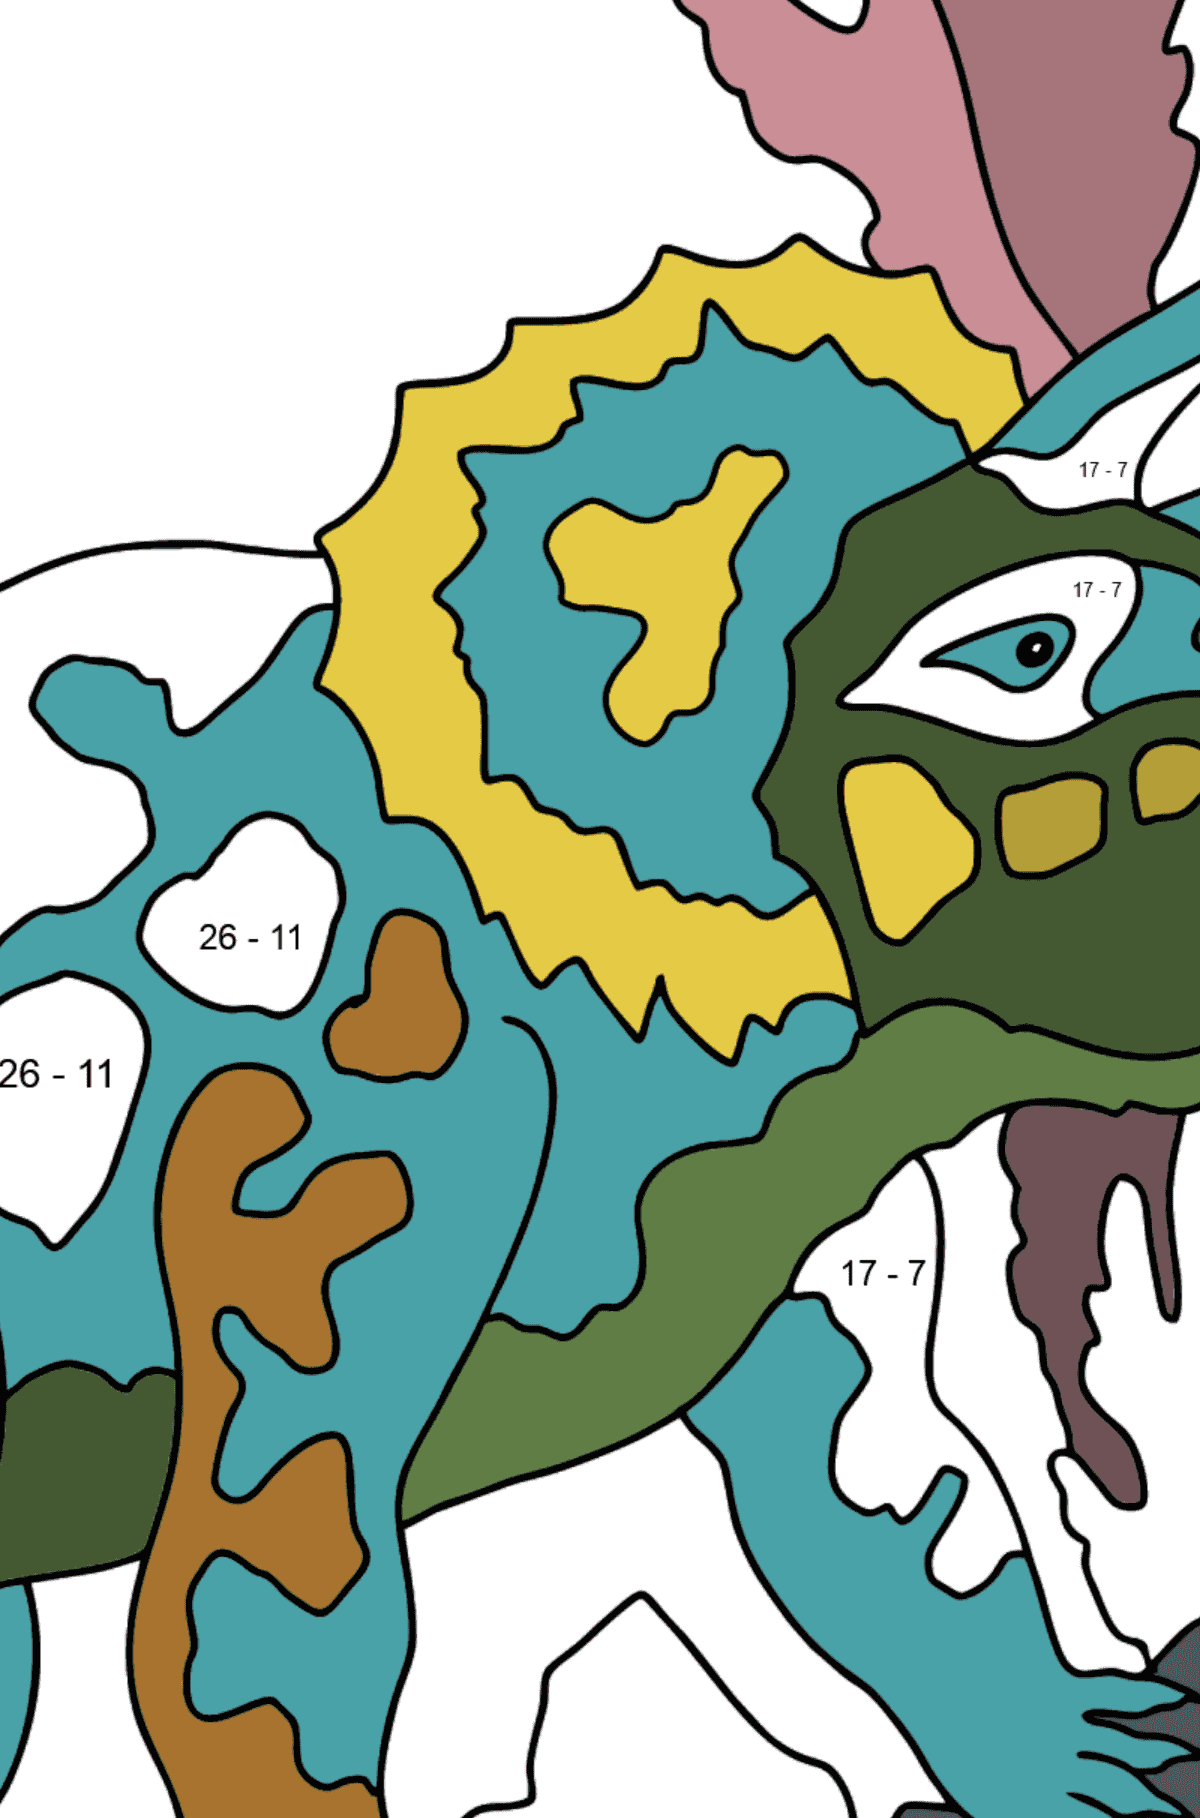 Coloring Page - Triceratops - A Grass-Eating Dinosaur - Math Coloring - Subtraction for Kids